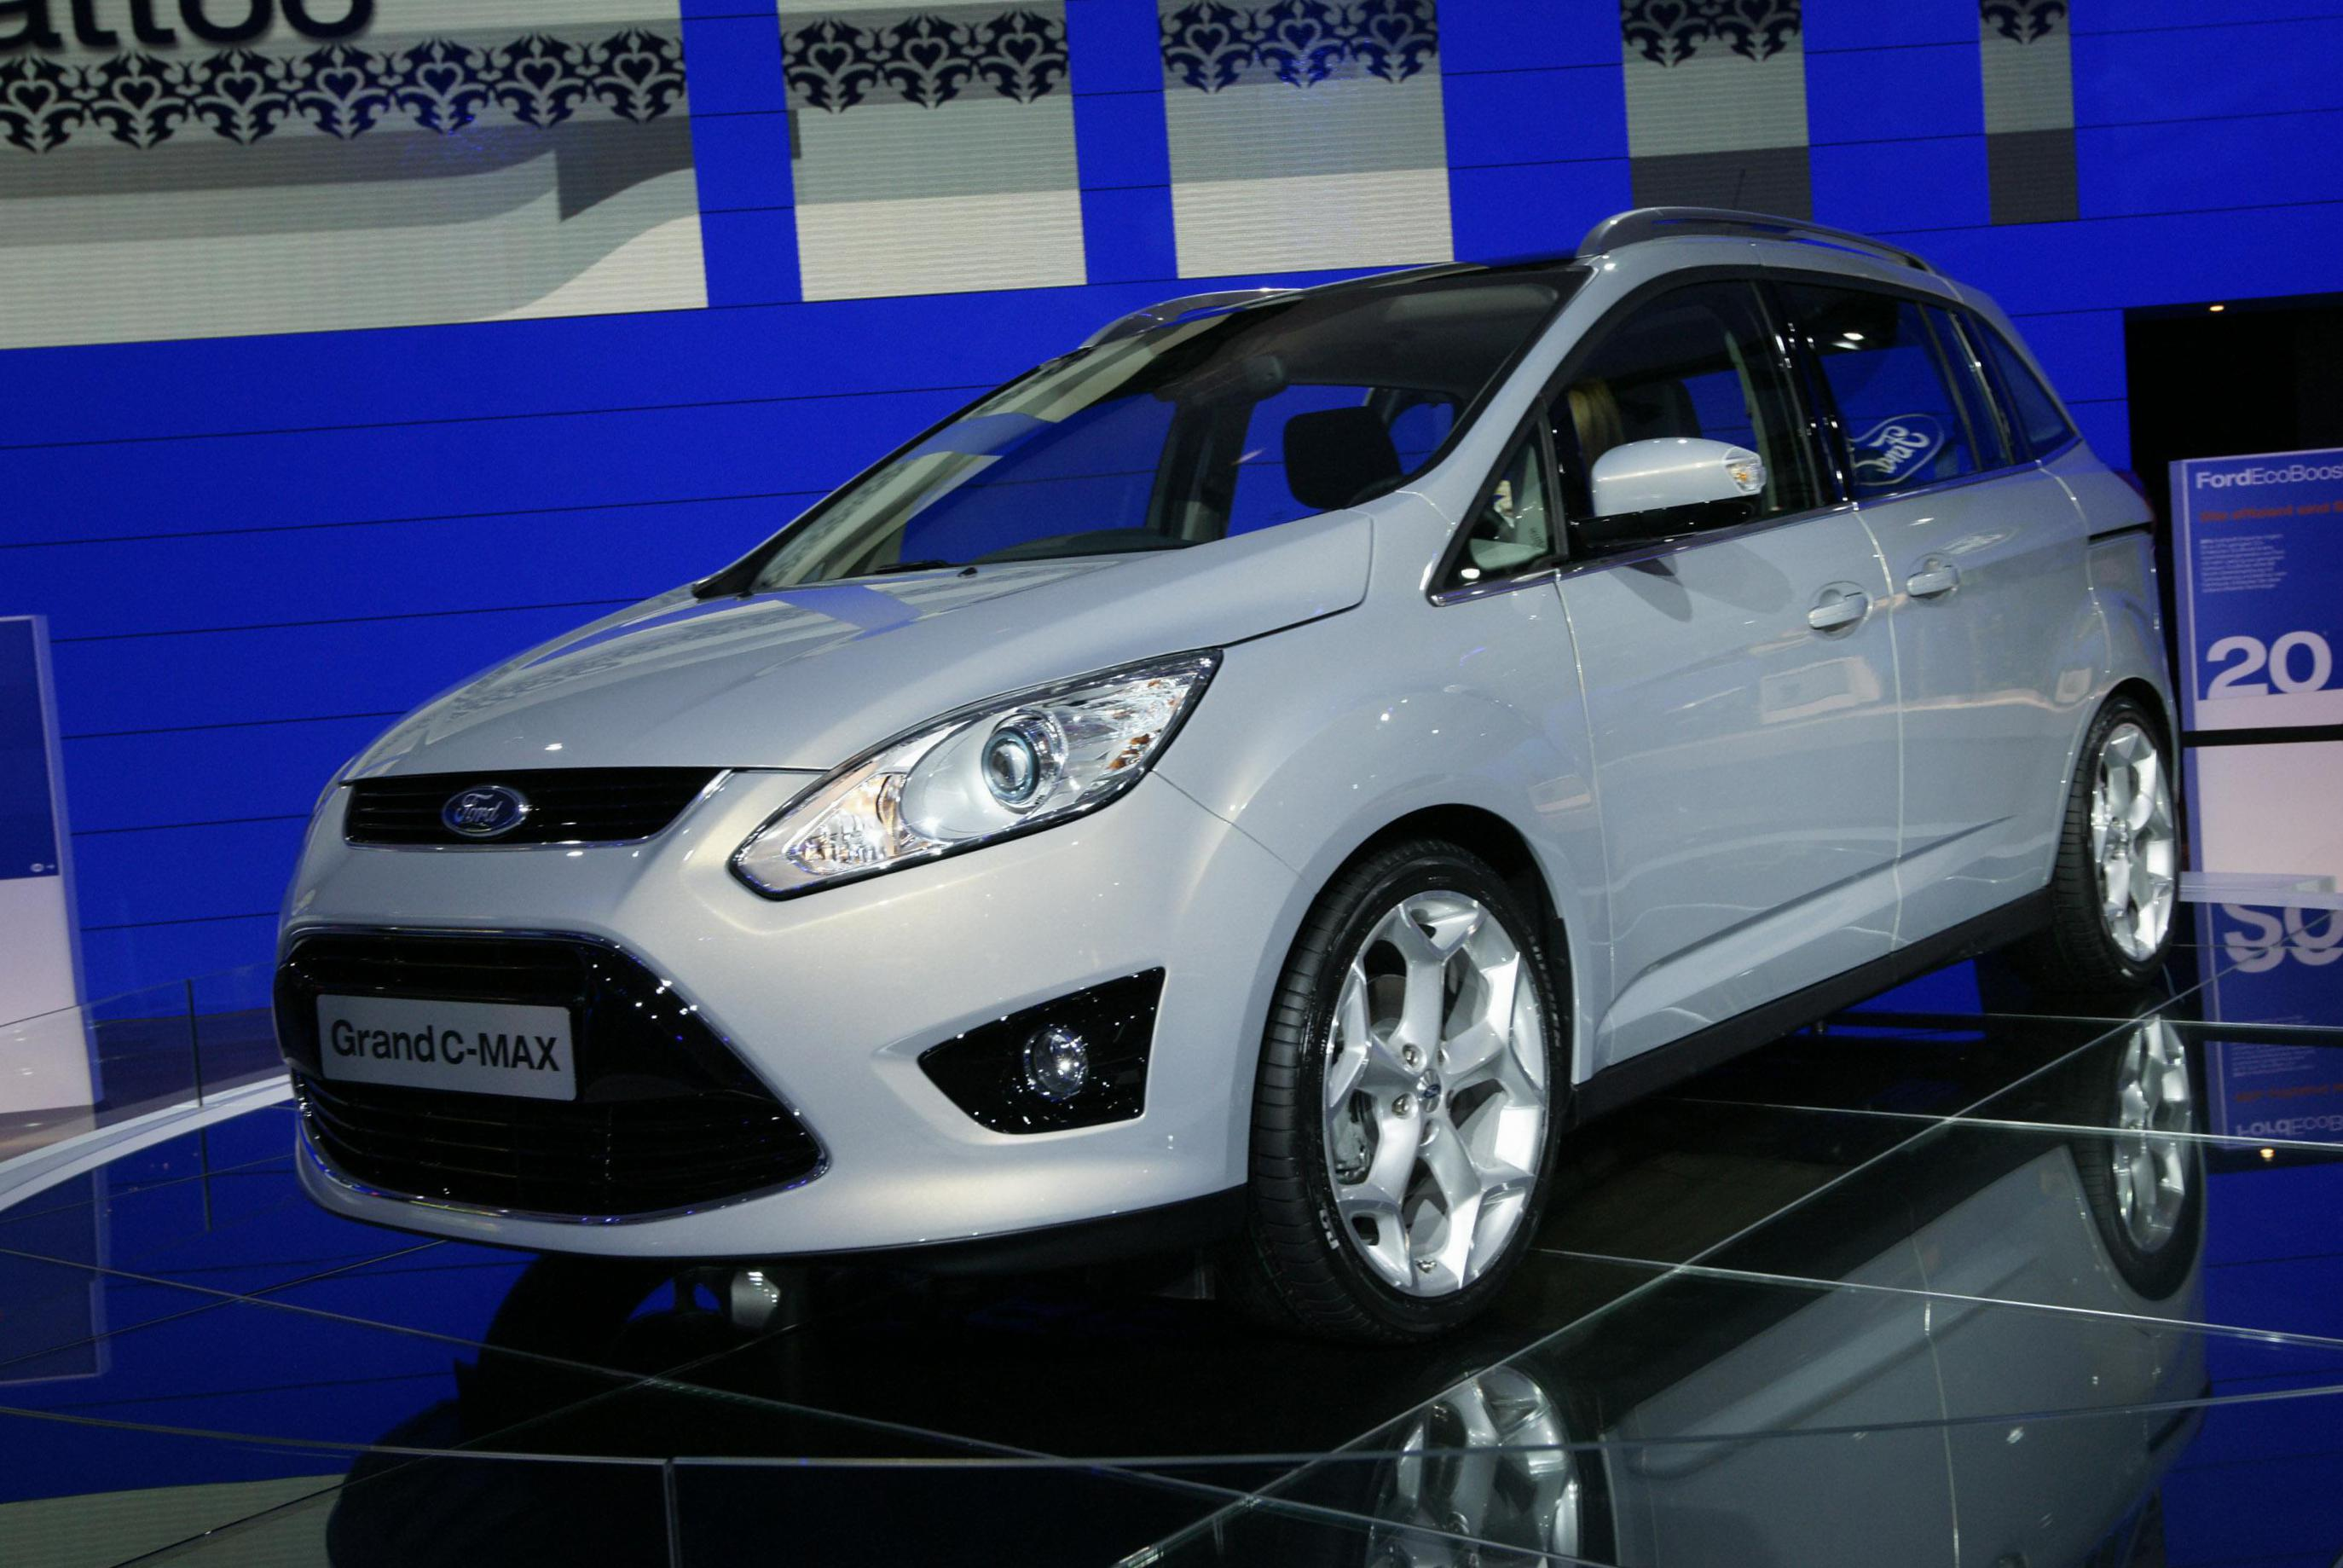 Ford C-Max model 2015